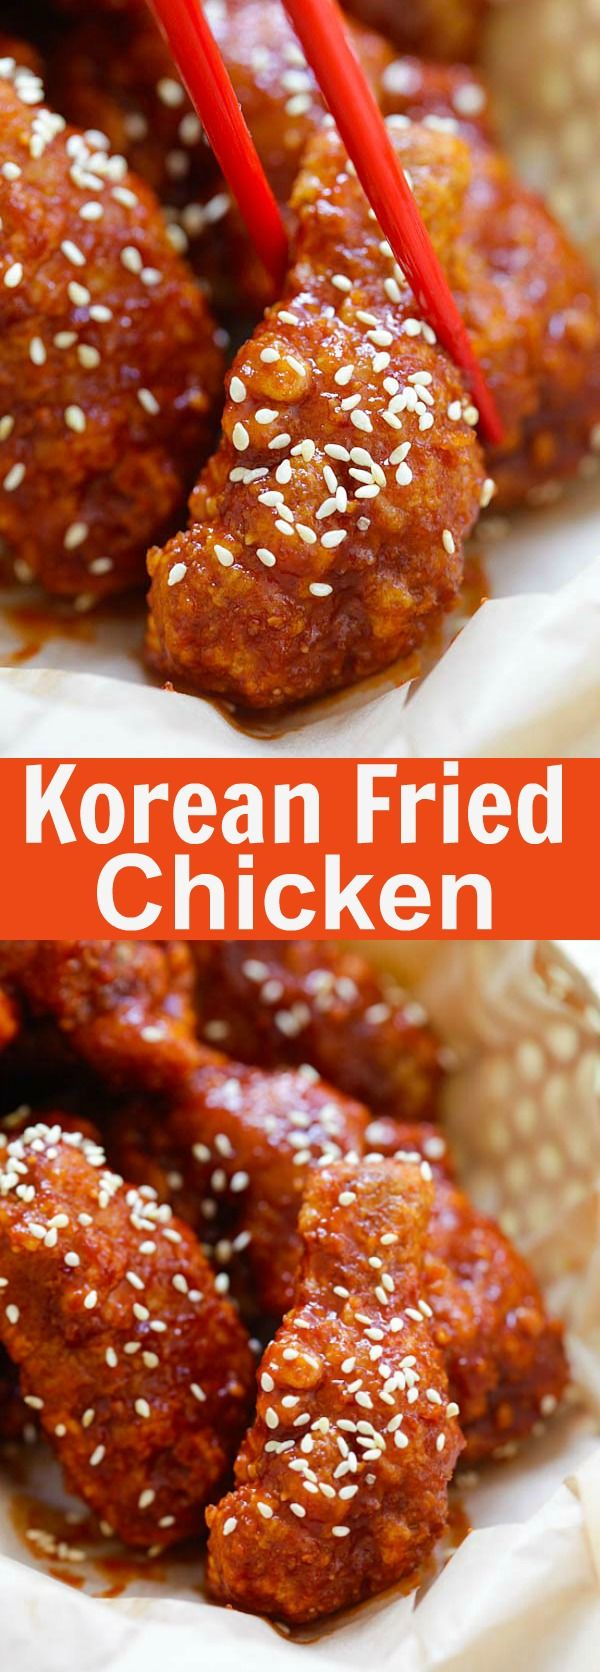 Korean Fried Chicken – the BEST Korean fried chicken recipe that yields crispy fried chicken in spicy, savory and sweet sauce. Finger lickin' good | rasamalaysia.com